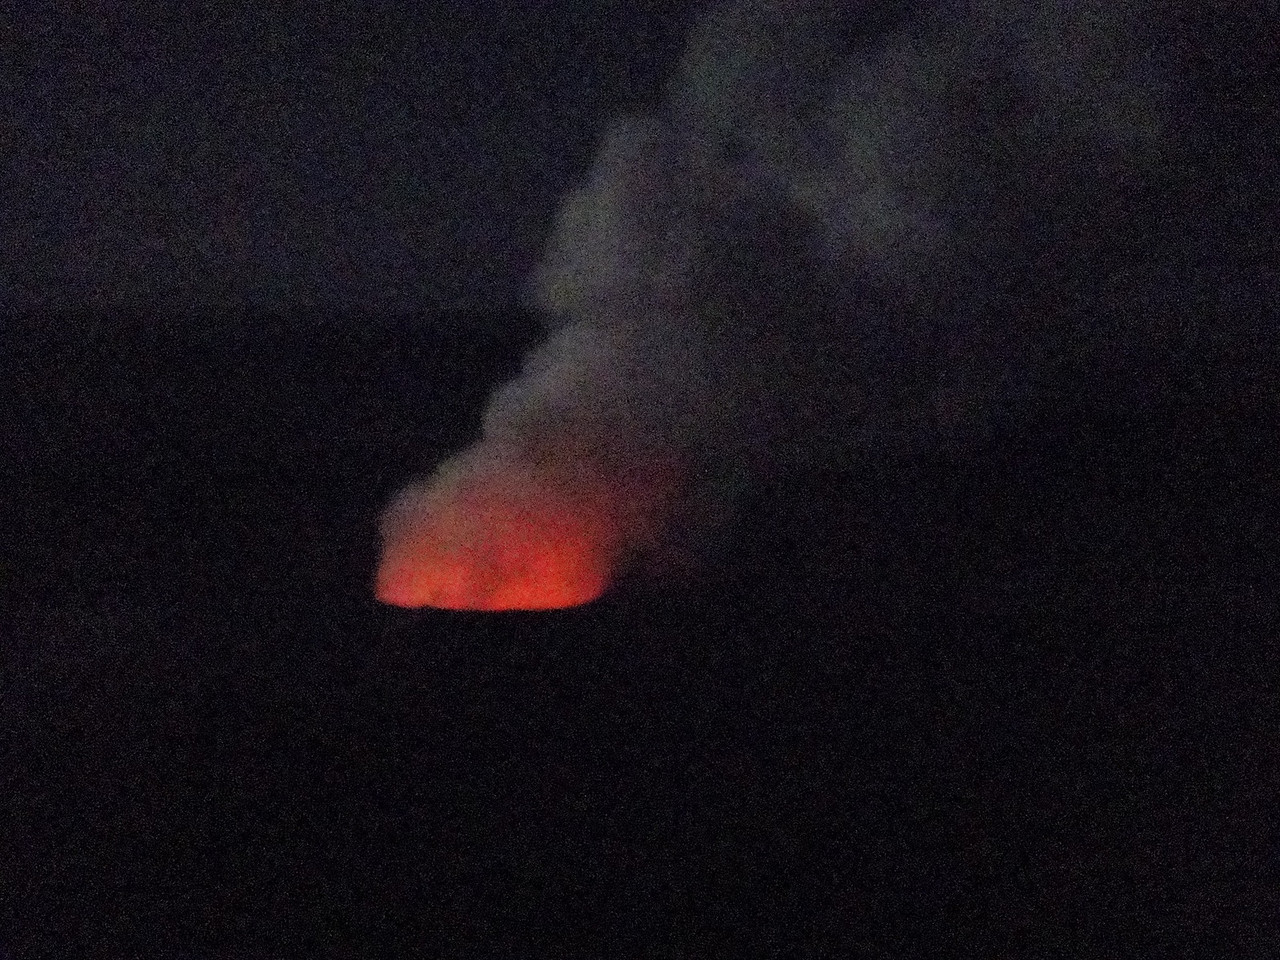 What a treat to get to see this our first night at Volcano.  The backdrop of the full moon was wonderful.